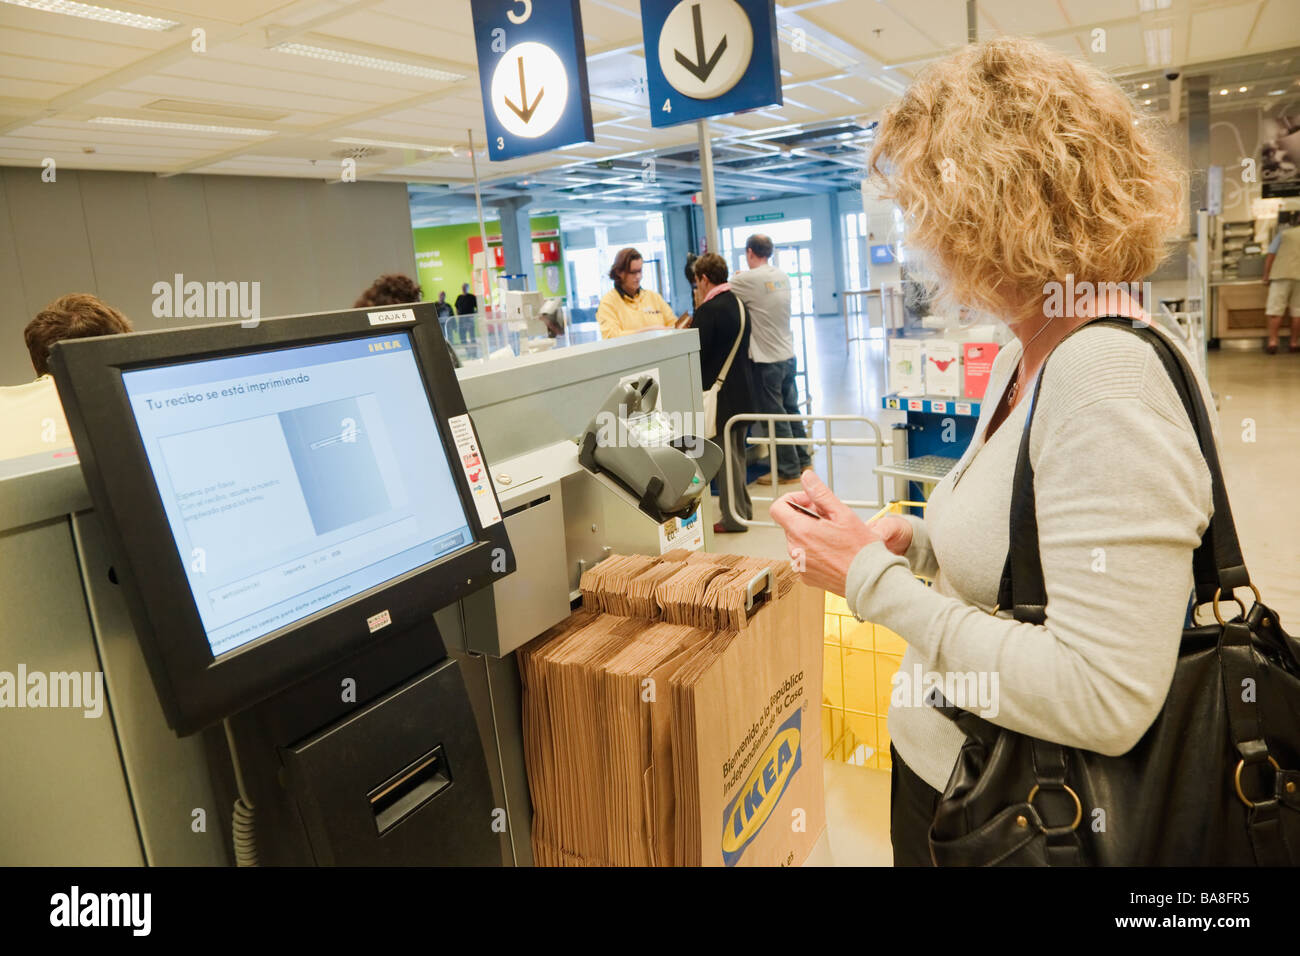 self service checkout point at ikea furniture and home furnishings stock photo royalty free. Black Bedroom Furniture Sets. Home Design Ideas